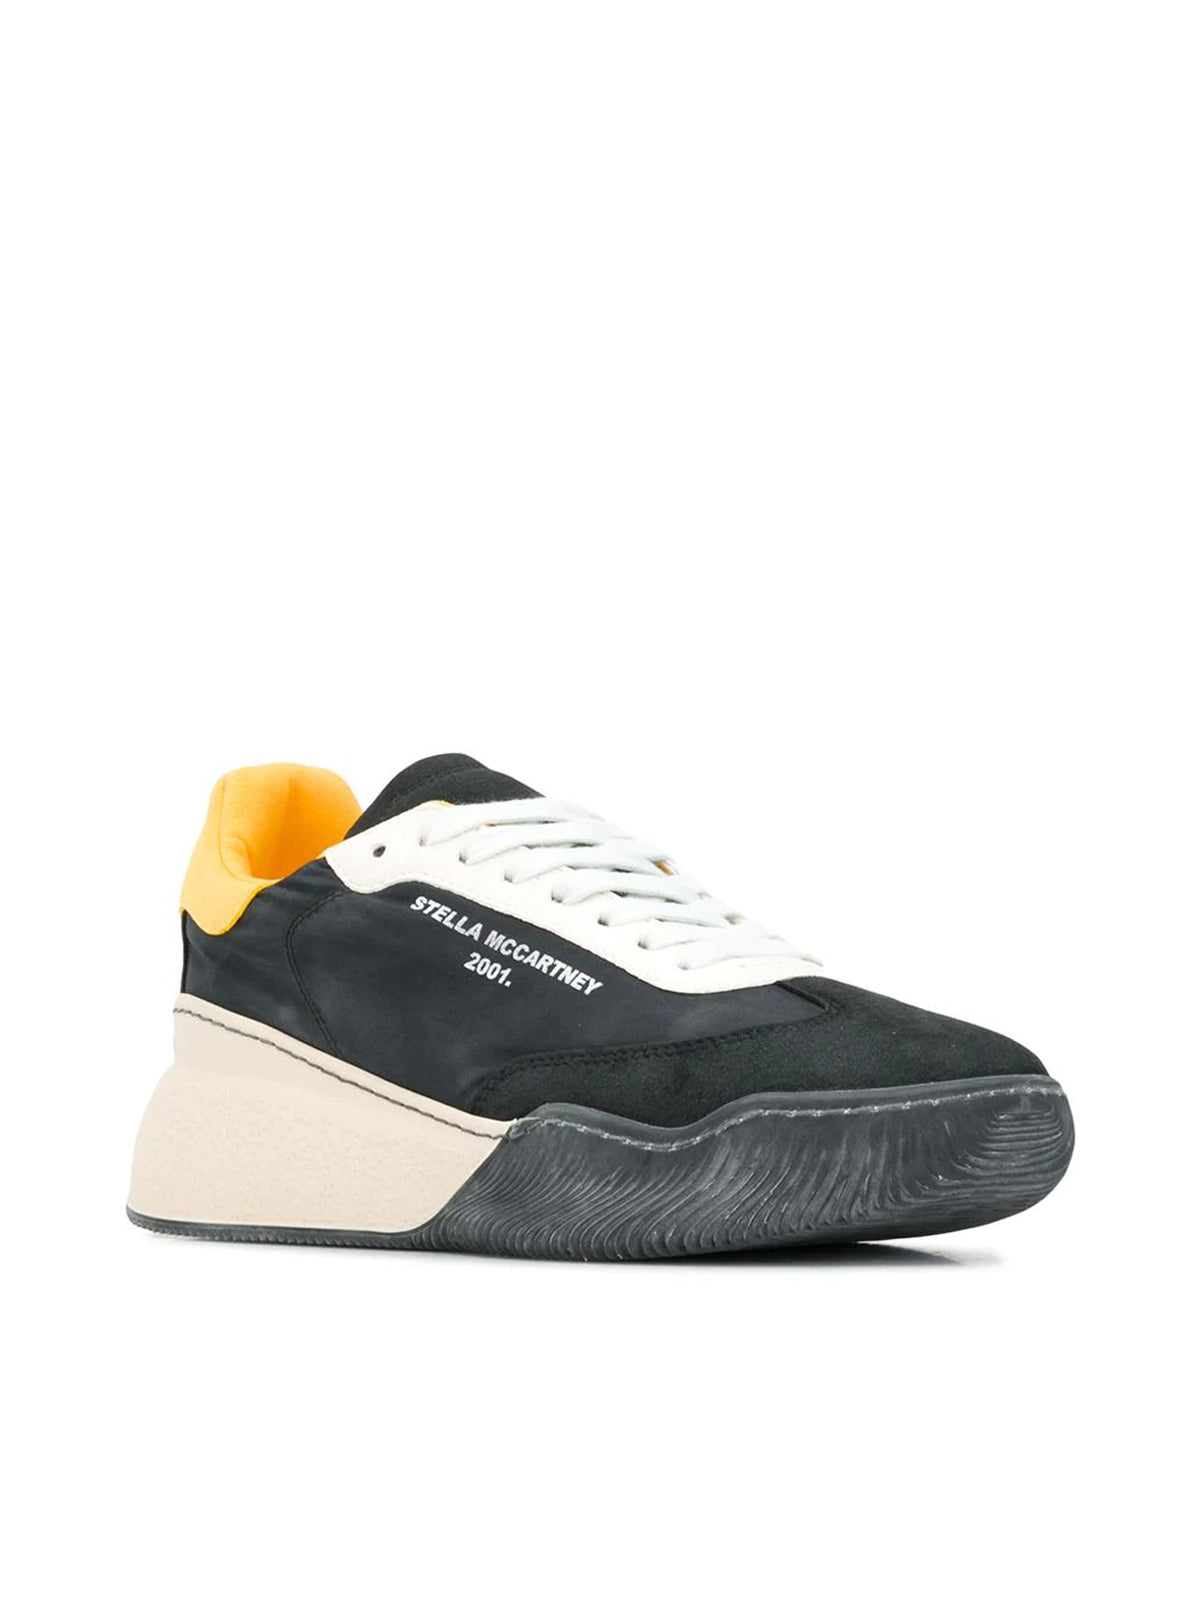 Sneakers with raised sole